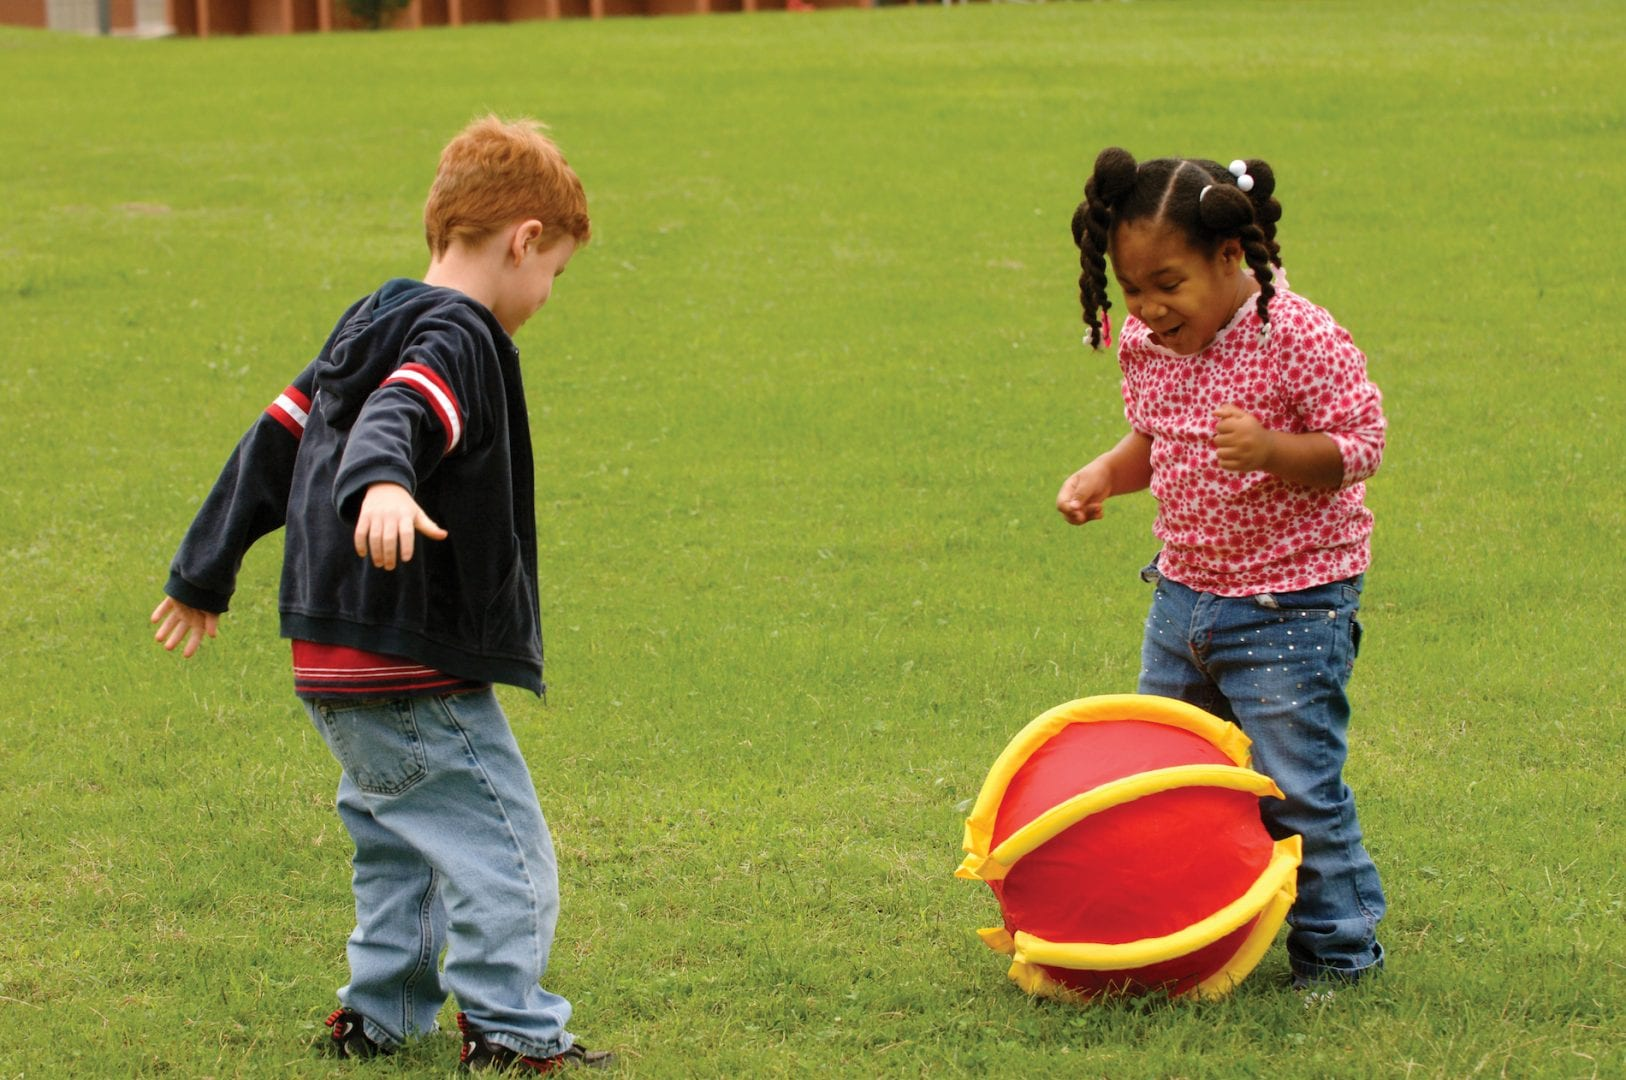 Young boy and girl playfully kicking a APH Rib-it Ball